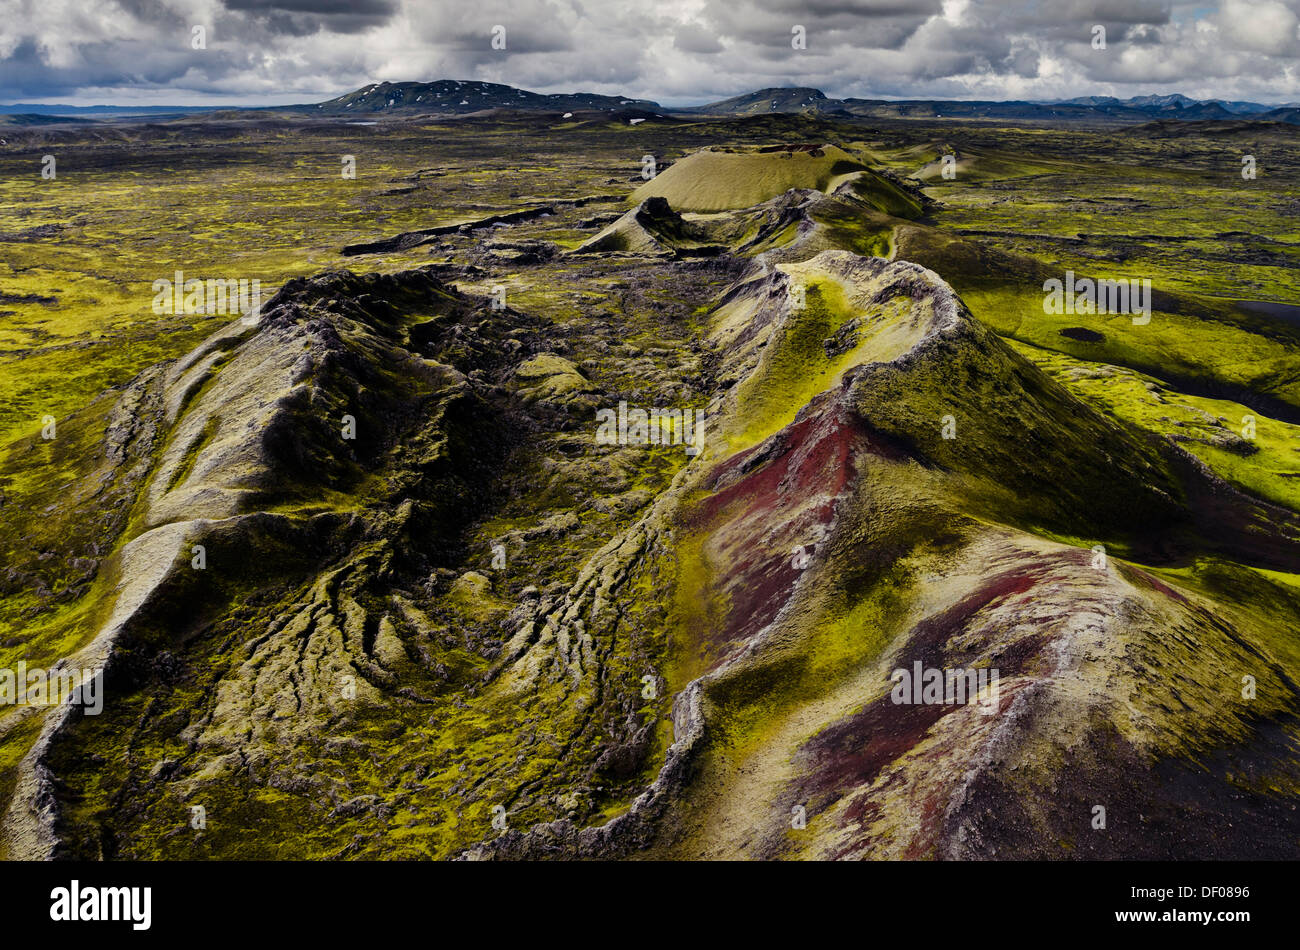 Aerial view, volcanic fissure, moss-covered Craters of Laki or Lakagígar, Icelandic Highlands, Southern Iceland, Suðurland - Stock Image